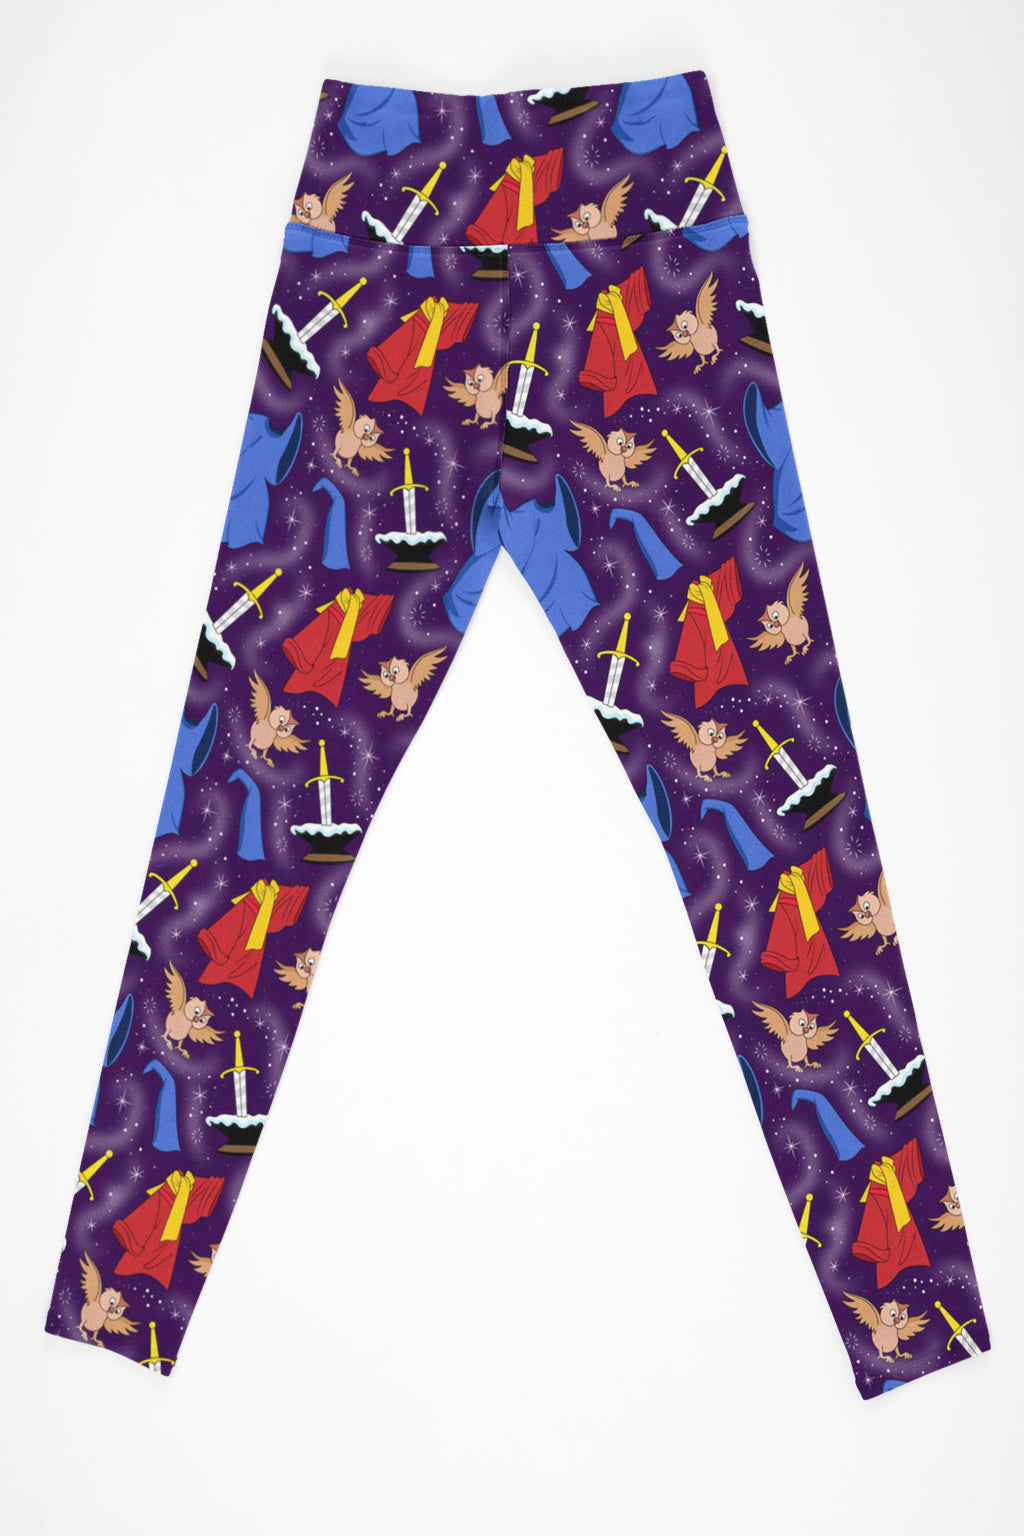 King Of England Leggings With Pockets - Women's - PRESALE